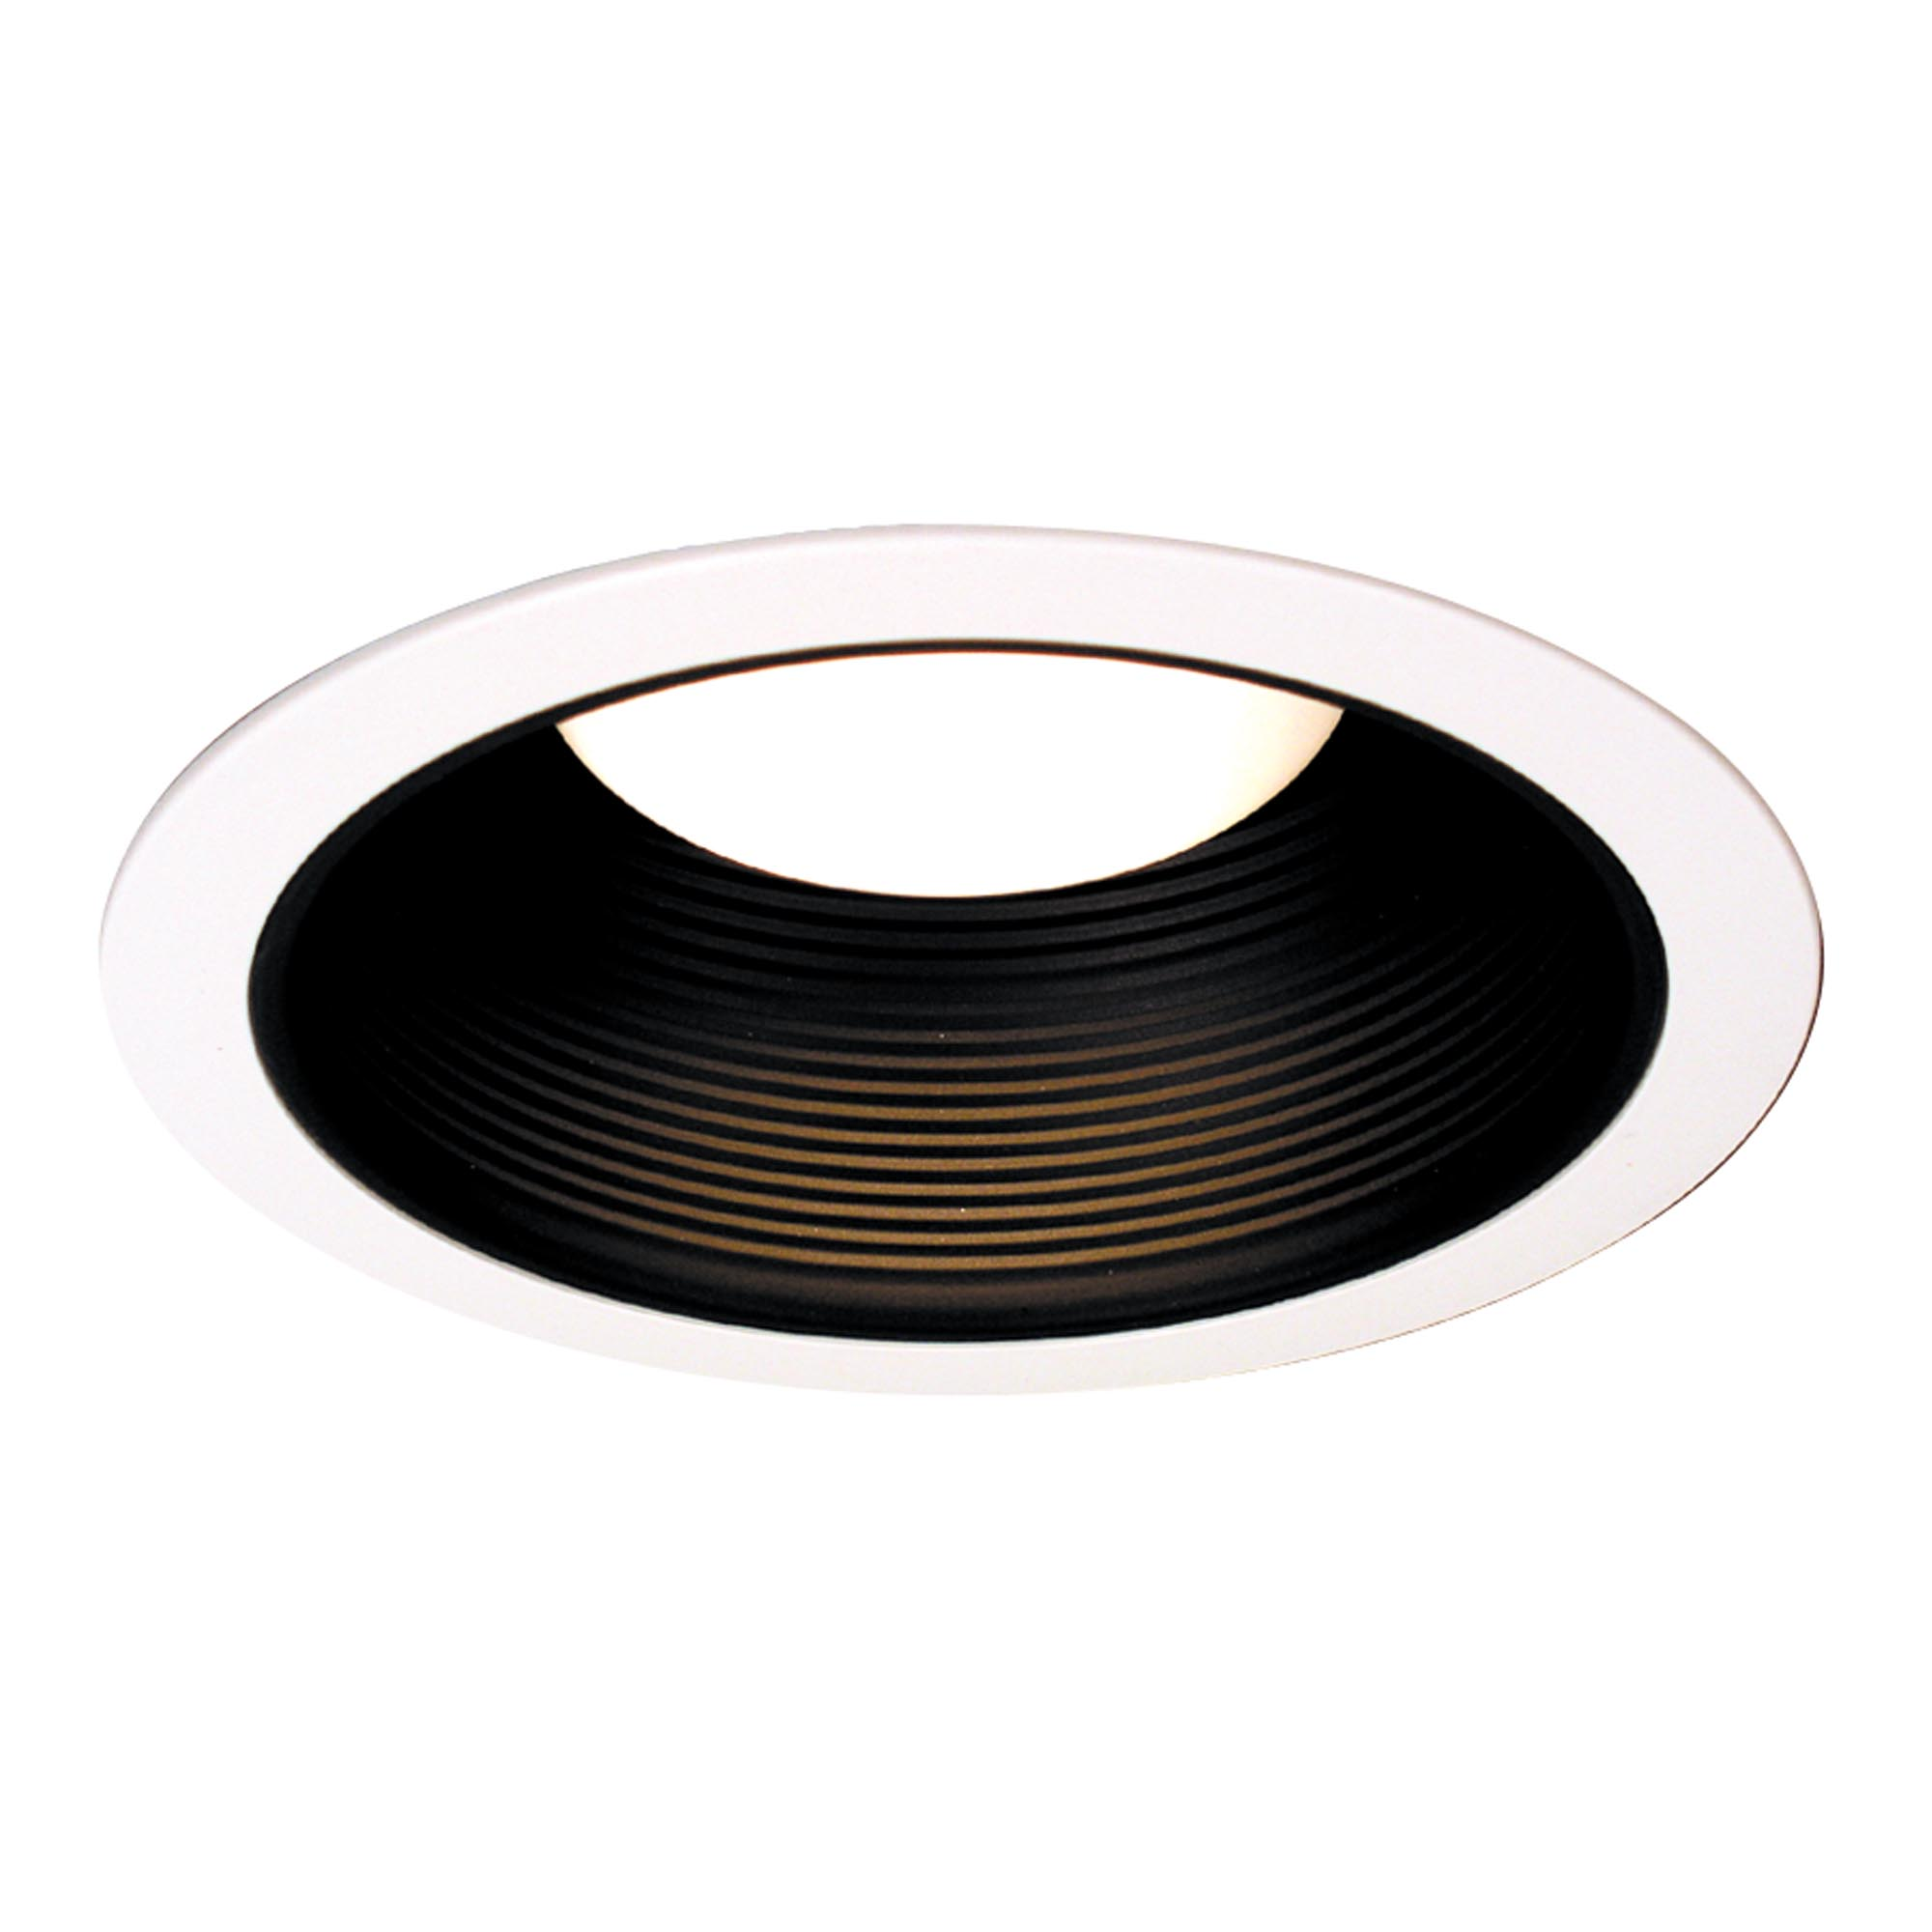 Introduction  sc 1 st  Warisan Lighting & TOP 10 Ceiling light types of 2018 | Warisan Lighting azcodes.com